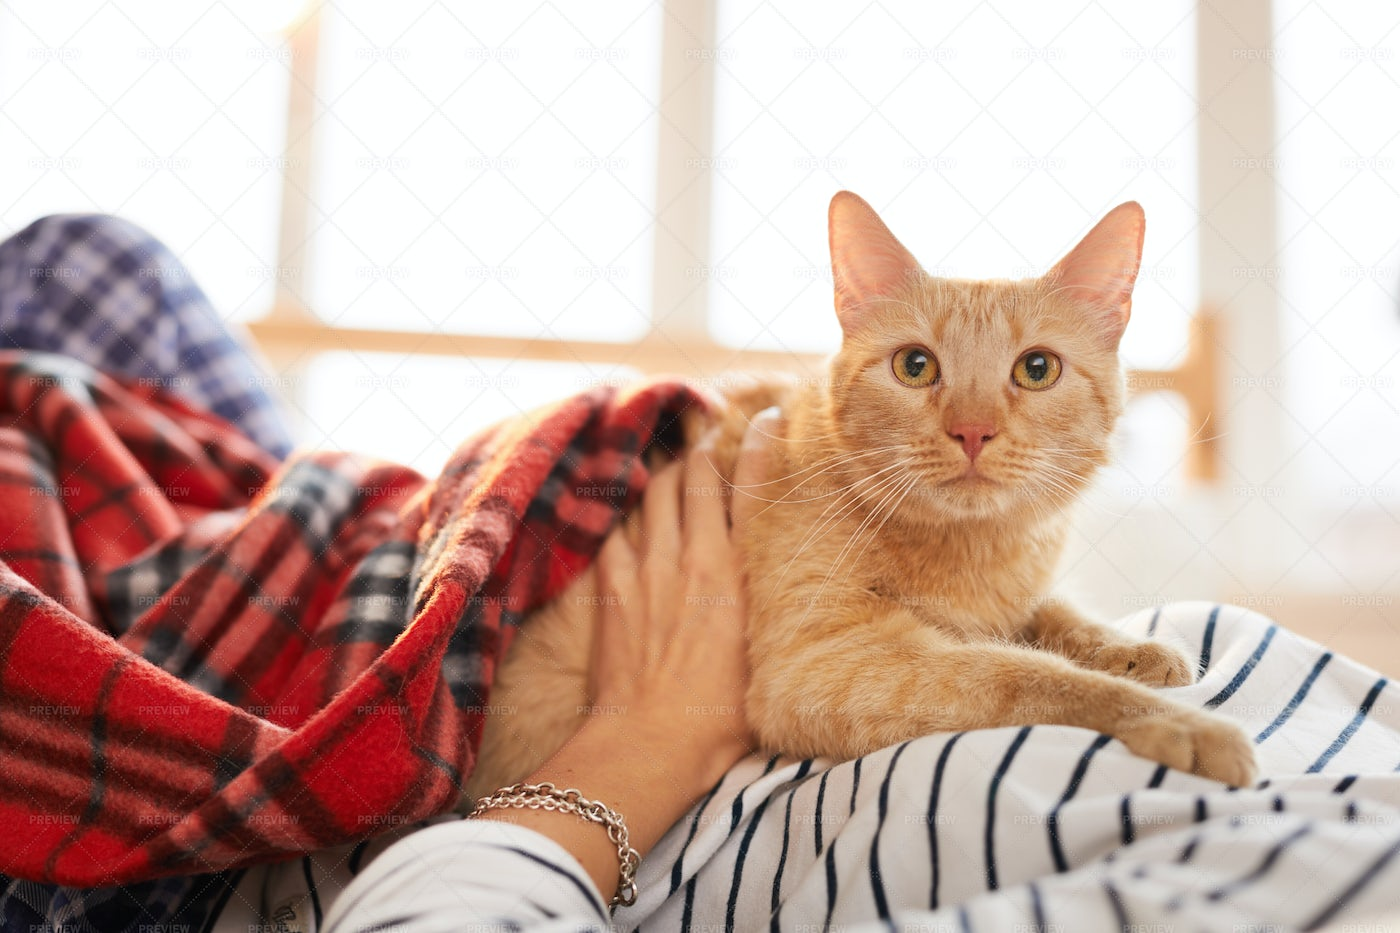 Ginger Cat Relaxing With Owner: Stock Photos